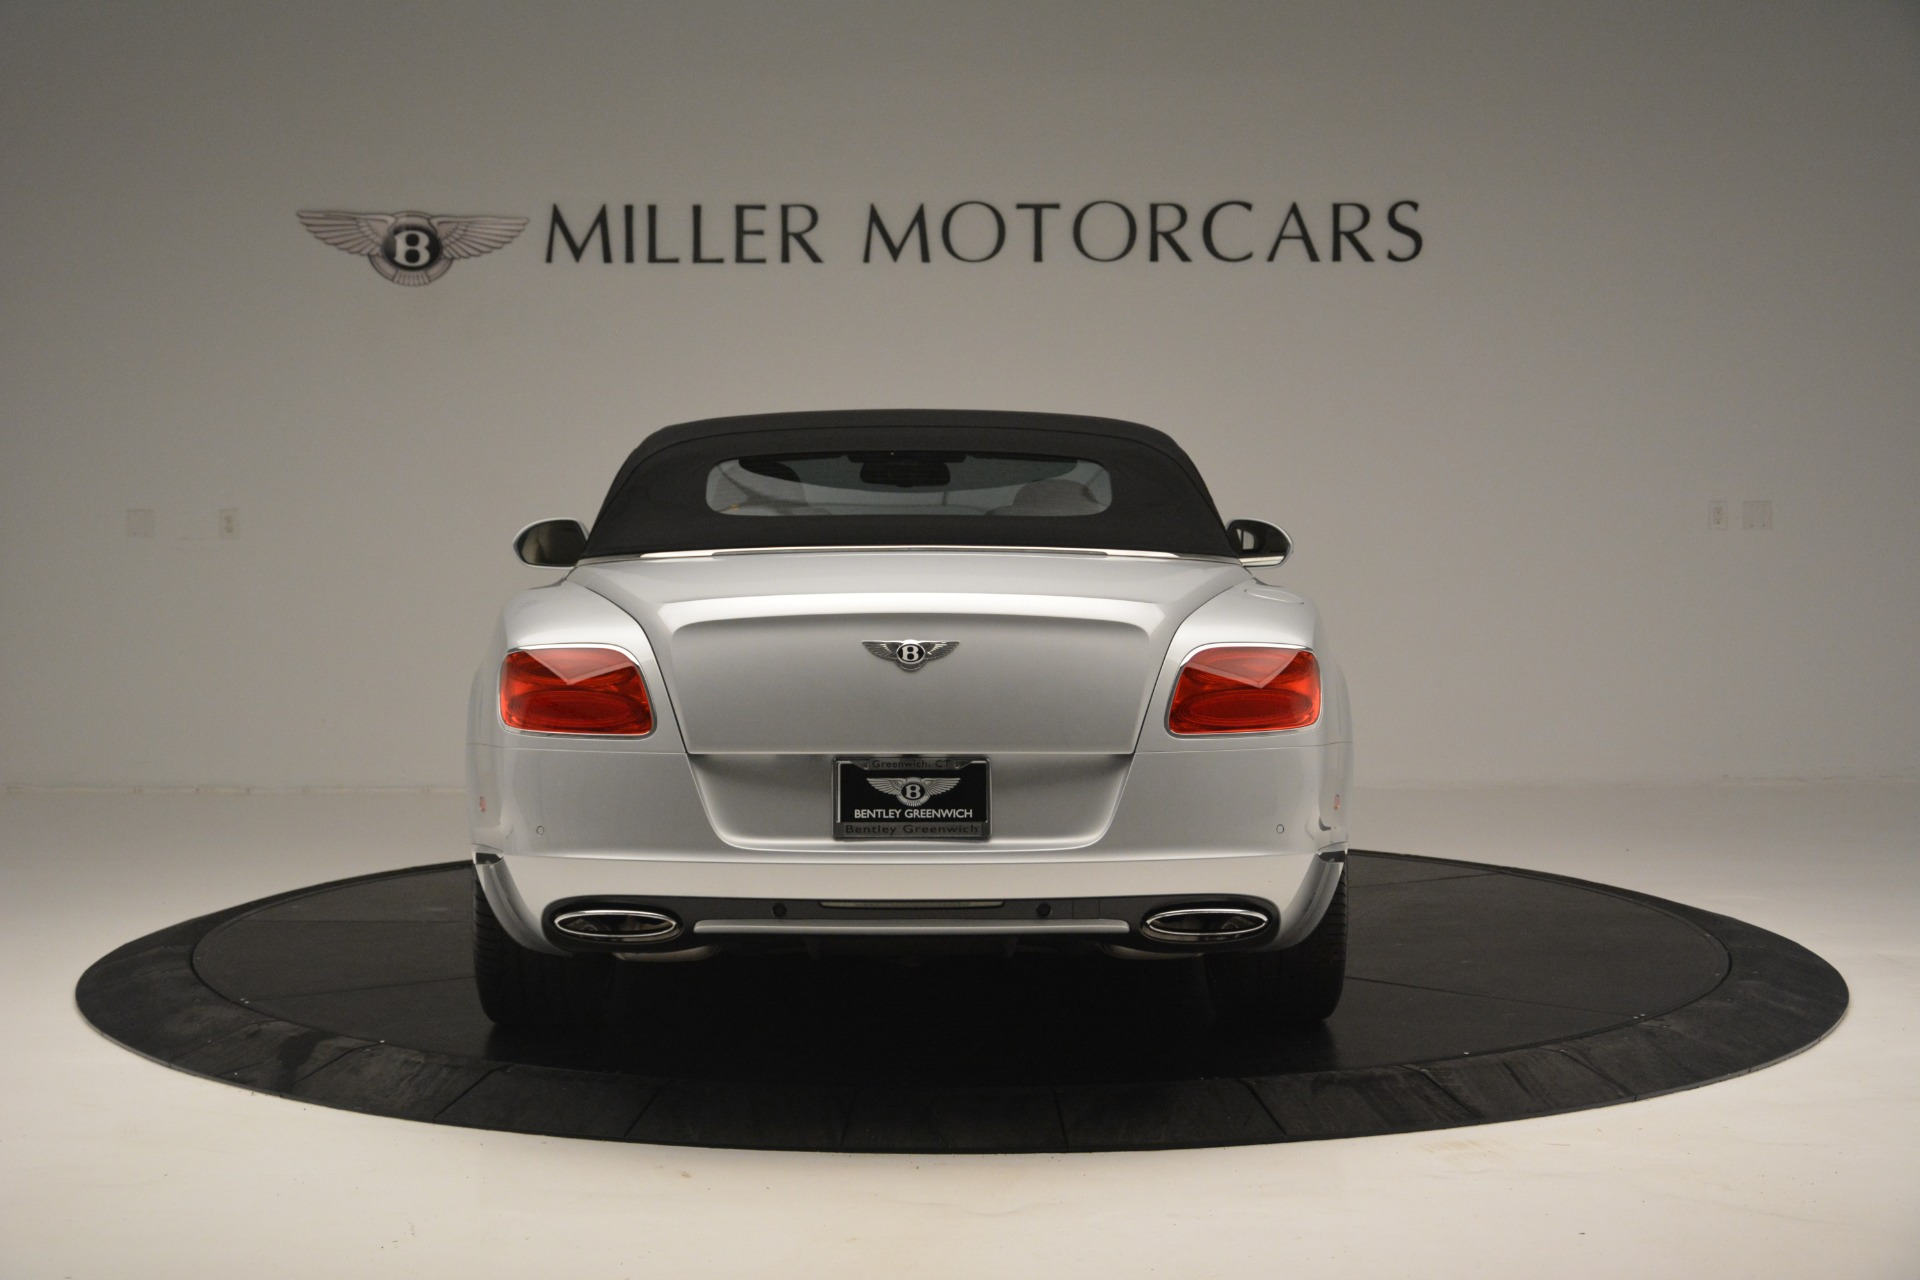 Used 2013 Bentley Continental GT W12 Le Mans Edition For Sale In Westport, CT 2519_p13